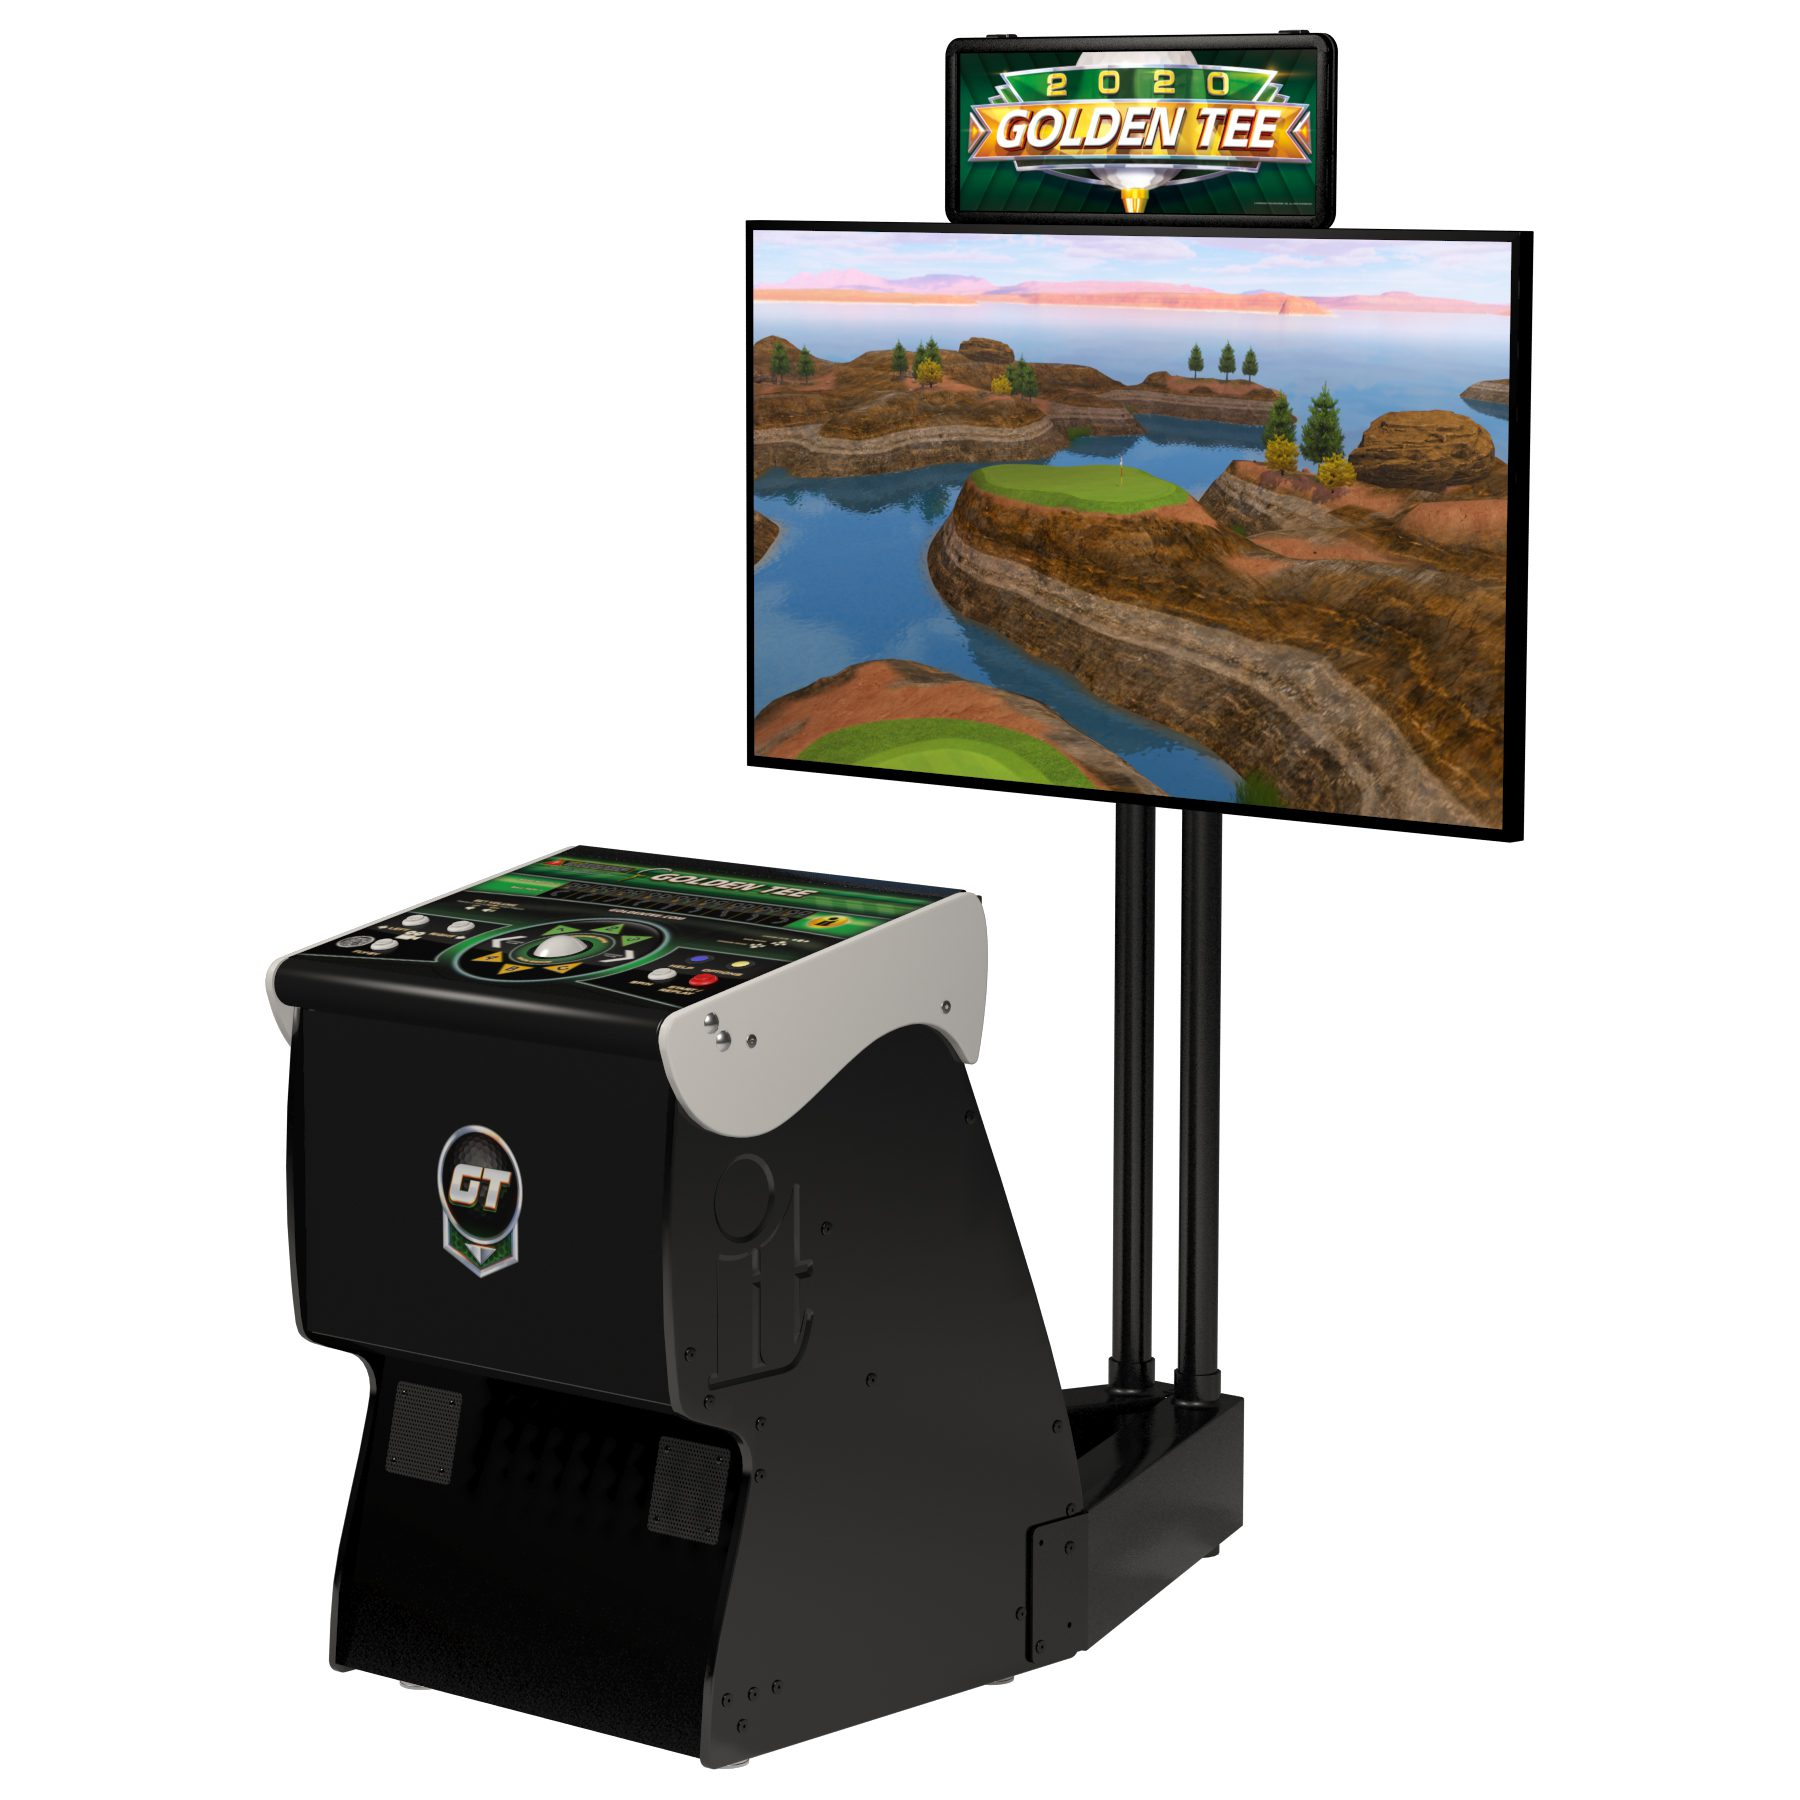 Multicade stand up video arcade game